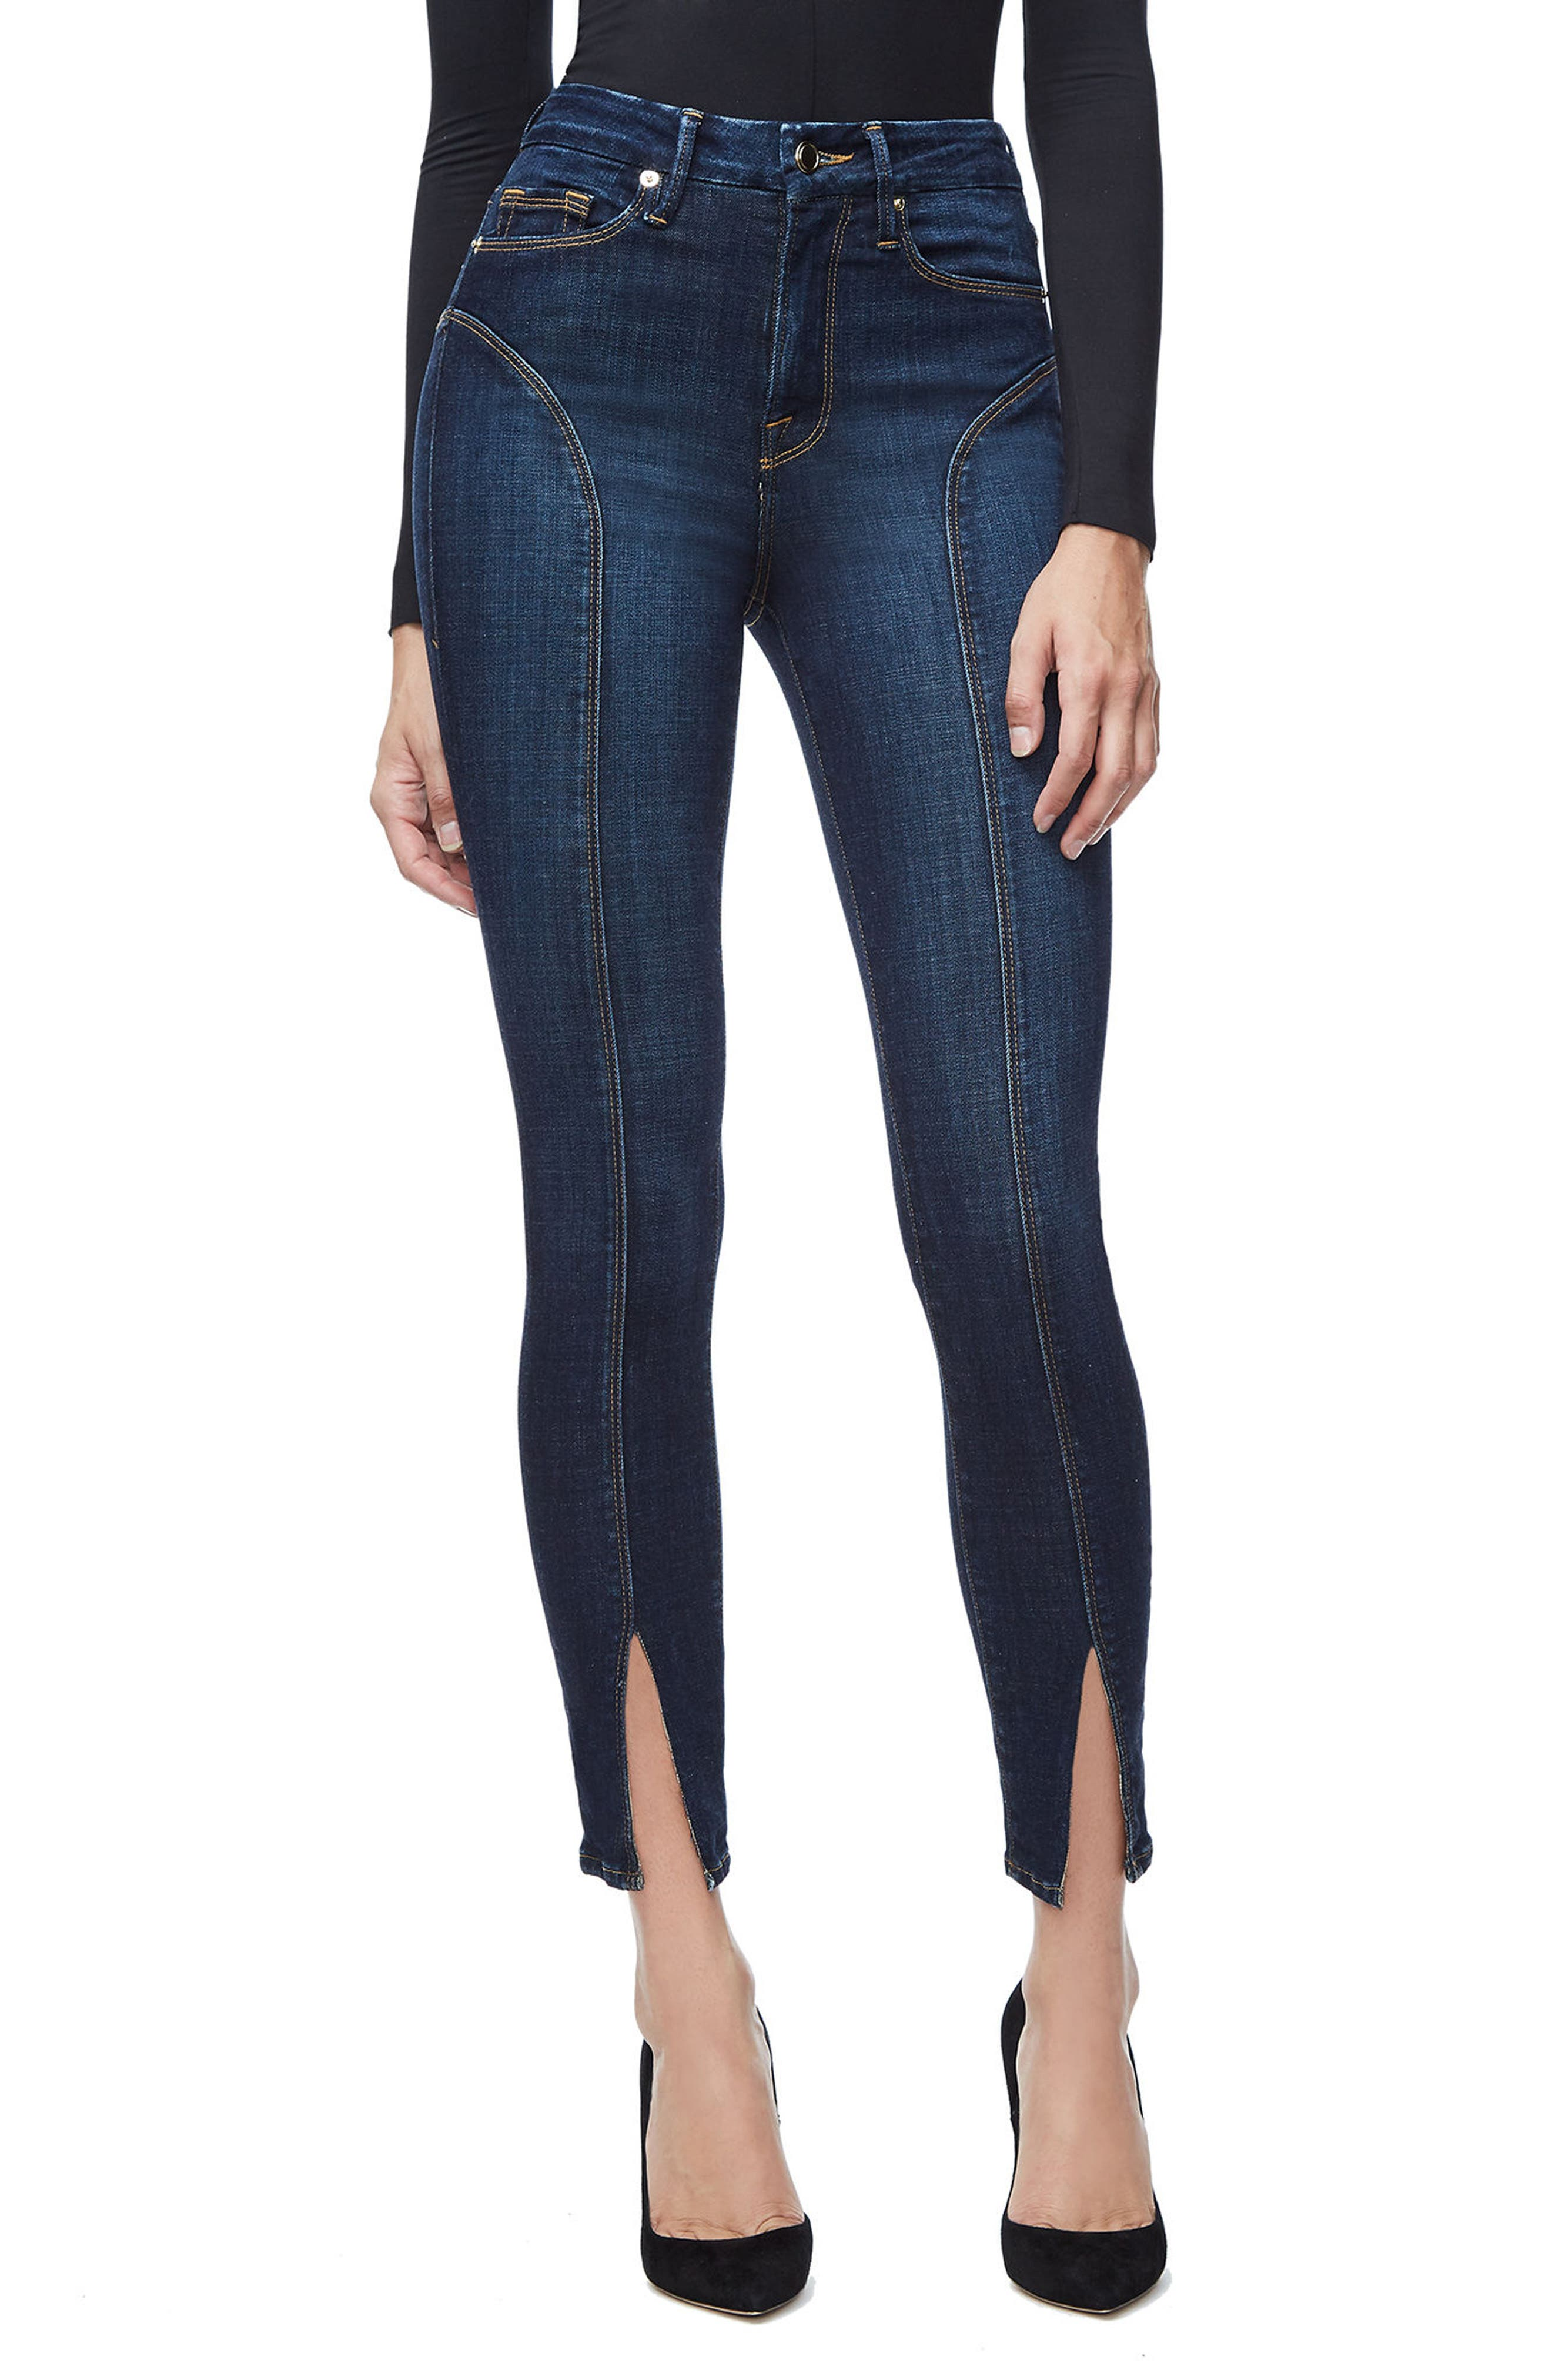 Main Image - Good American Good Legs Crop Skinny Jeans (Blue 025) (Regular & Plus Size)